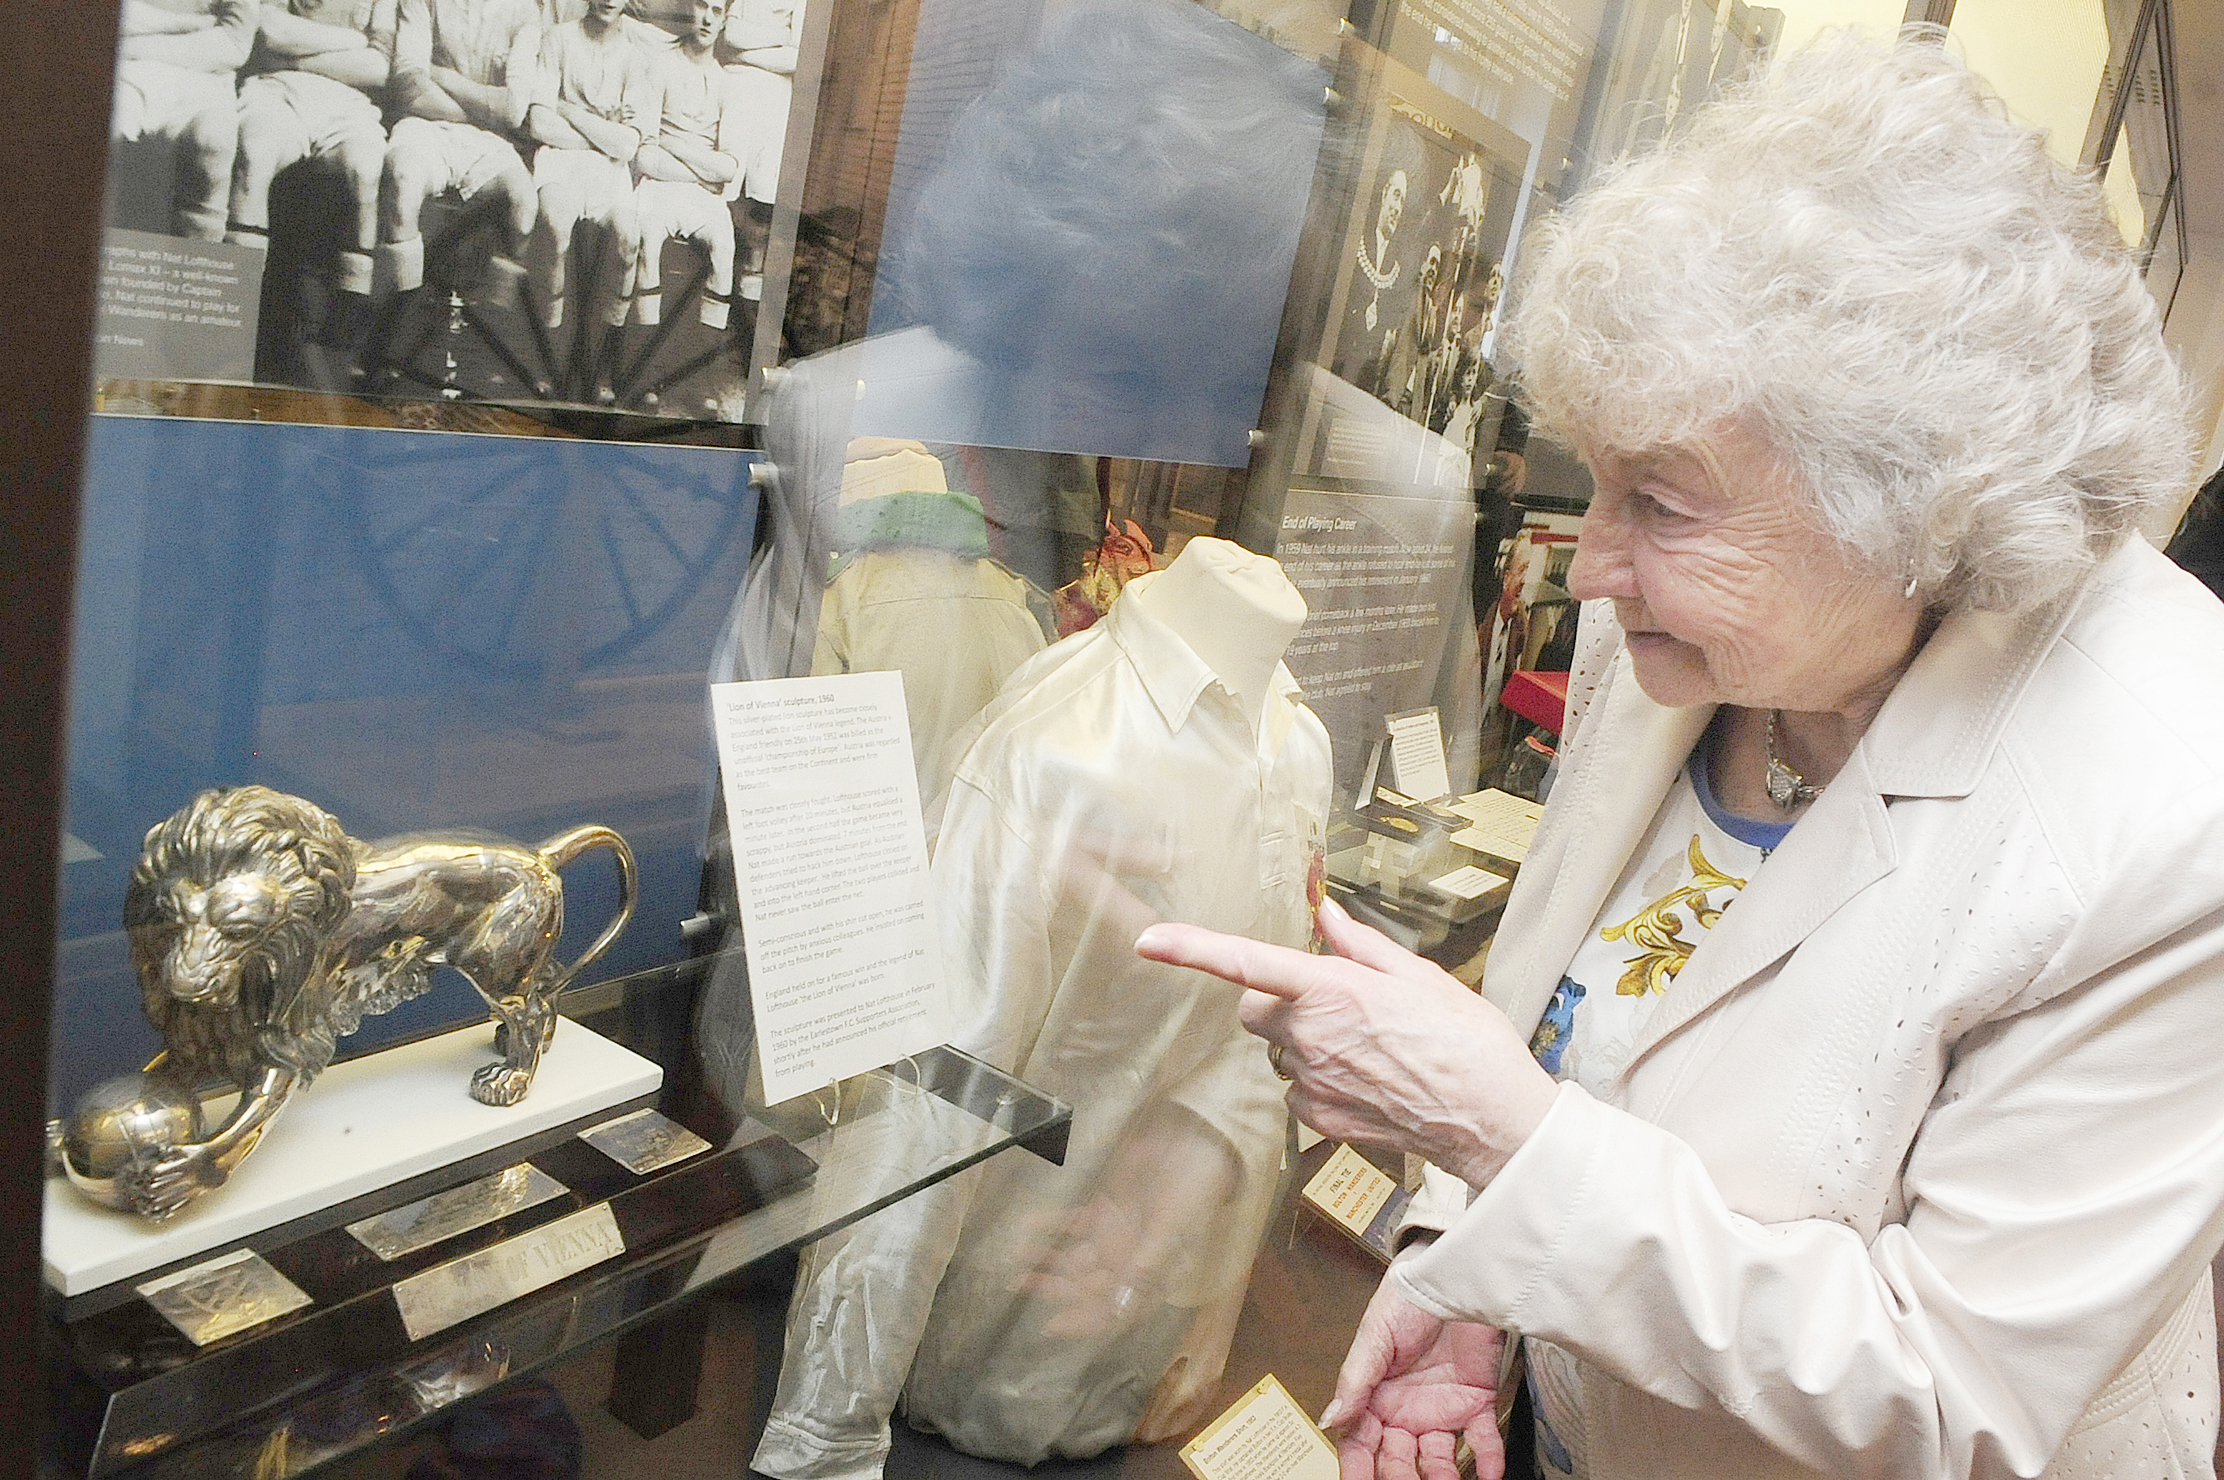 Nat Lofthouse's companion enjoys special viewing of his memorabilia